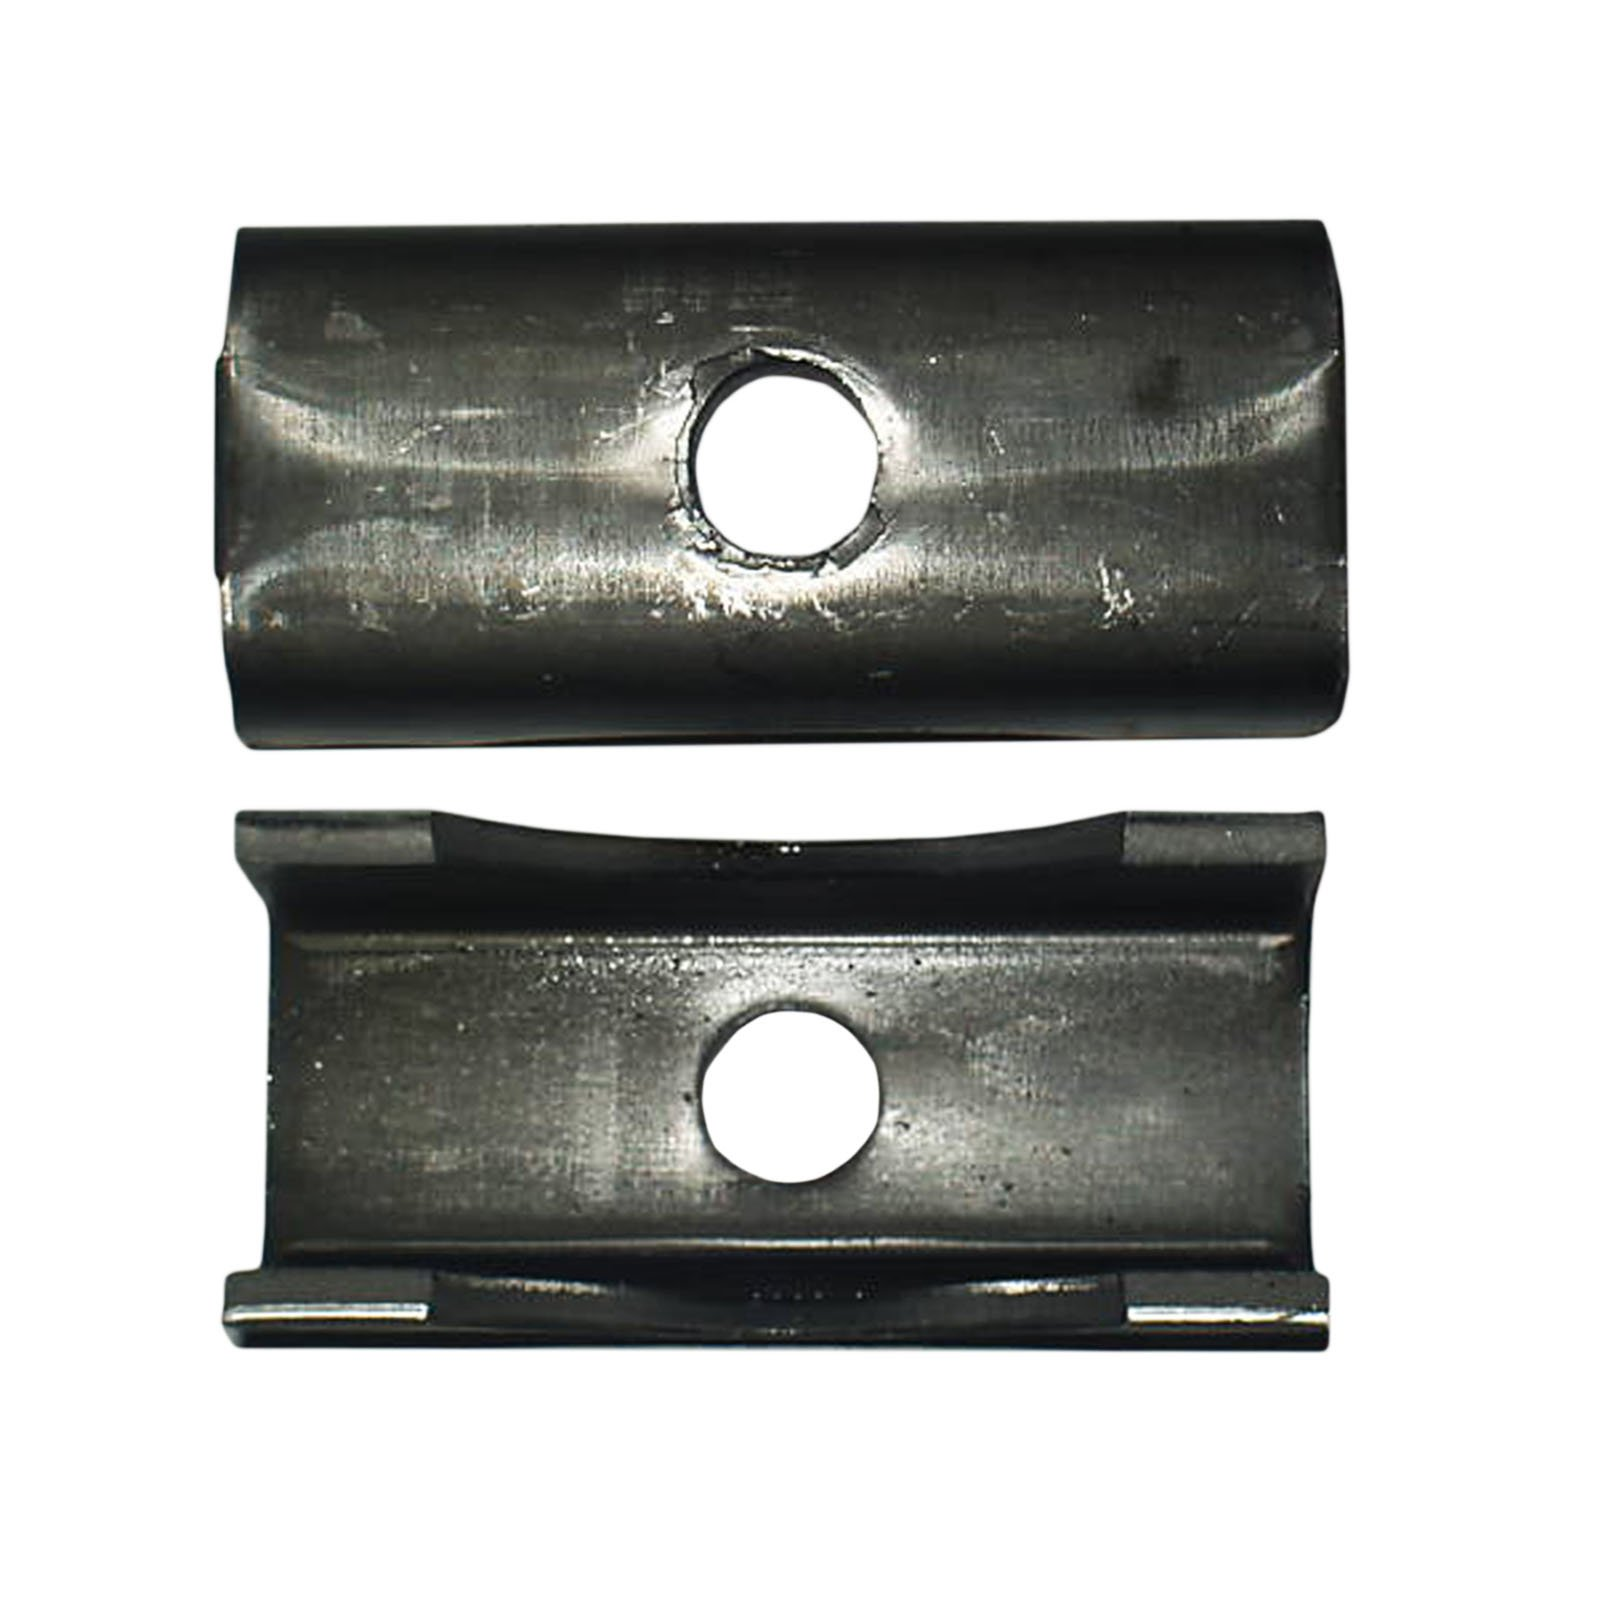 Pack of 2 Weld On Trailer Raw Steel Axle Spring Perch Seat 3'' Round Axel 7000 6000 5200# Capacity Series by BII by eKoi